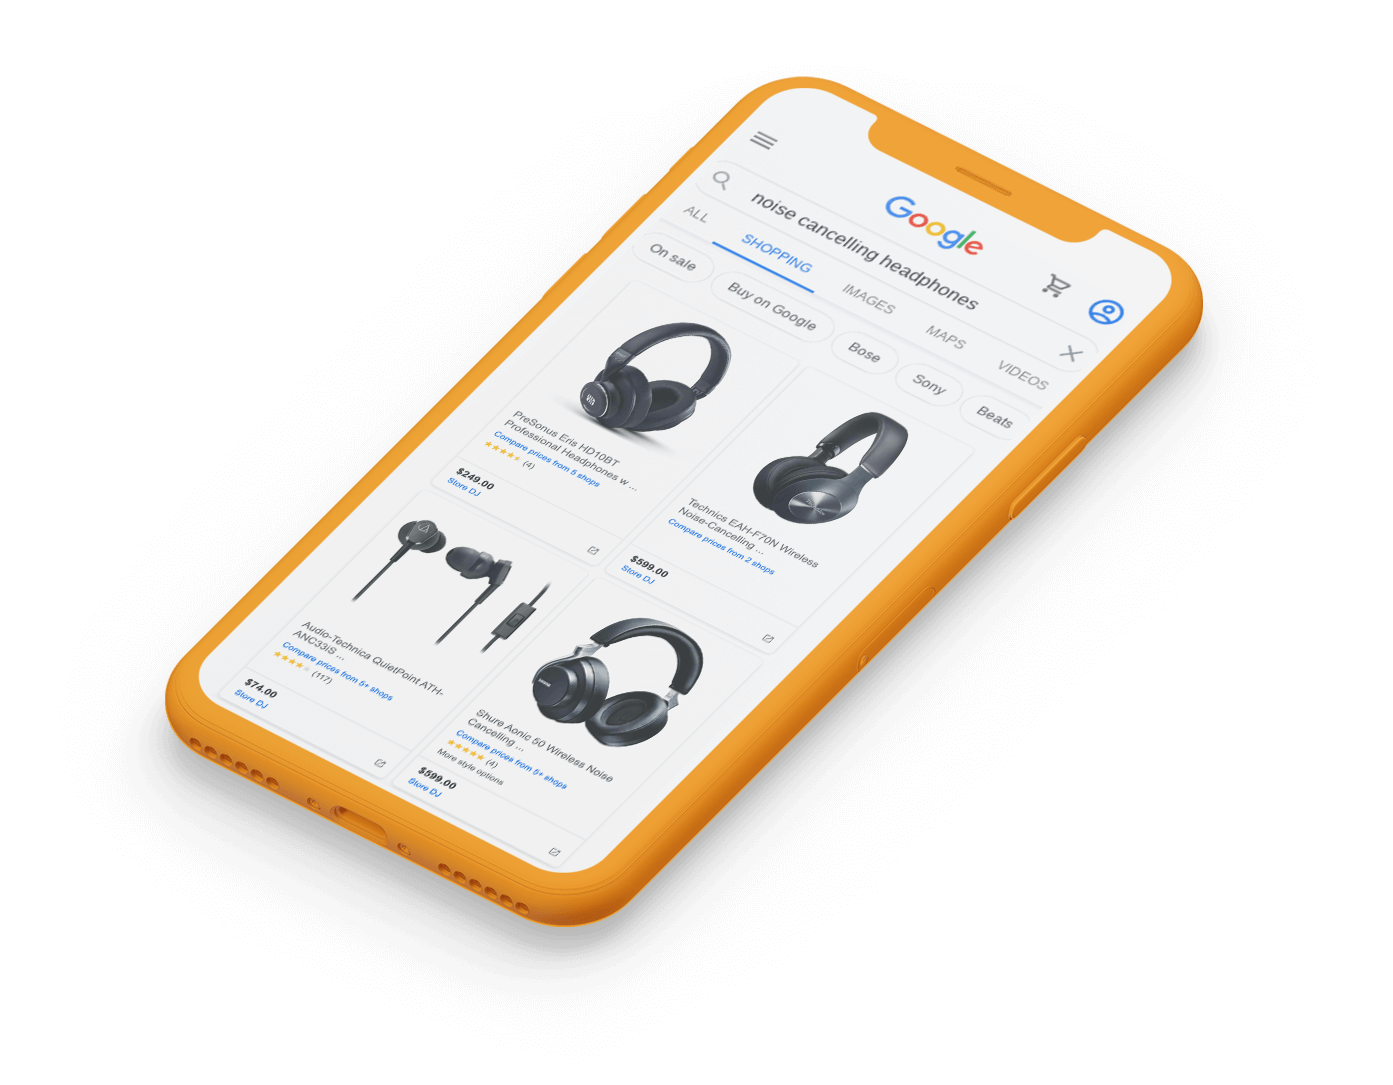 Large image of yellow phone showing google shopping feed of headphones for sale.